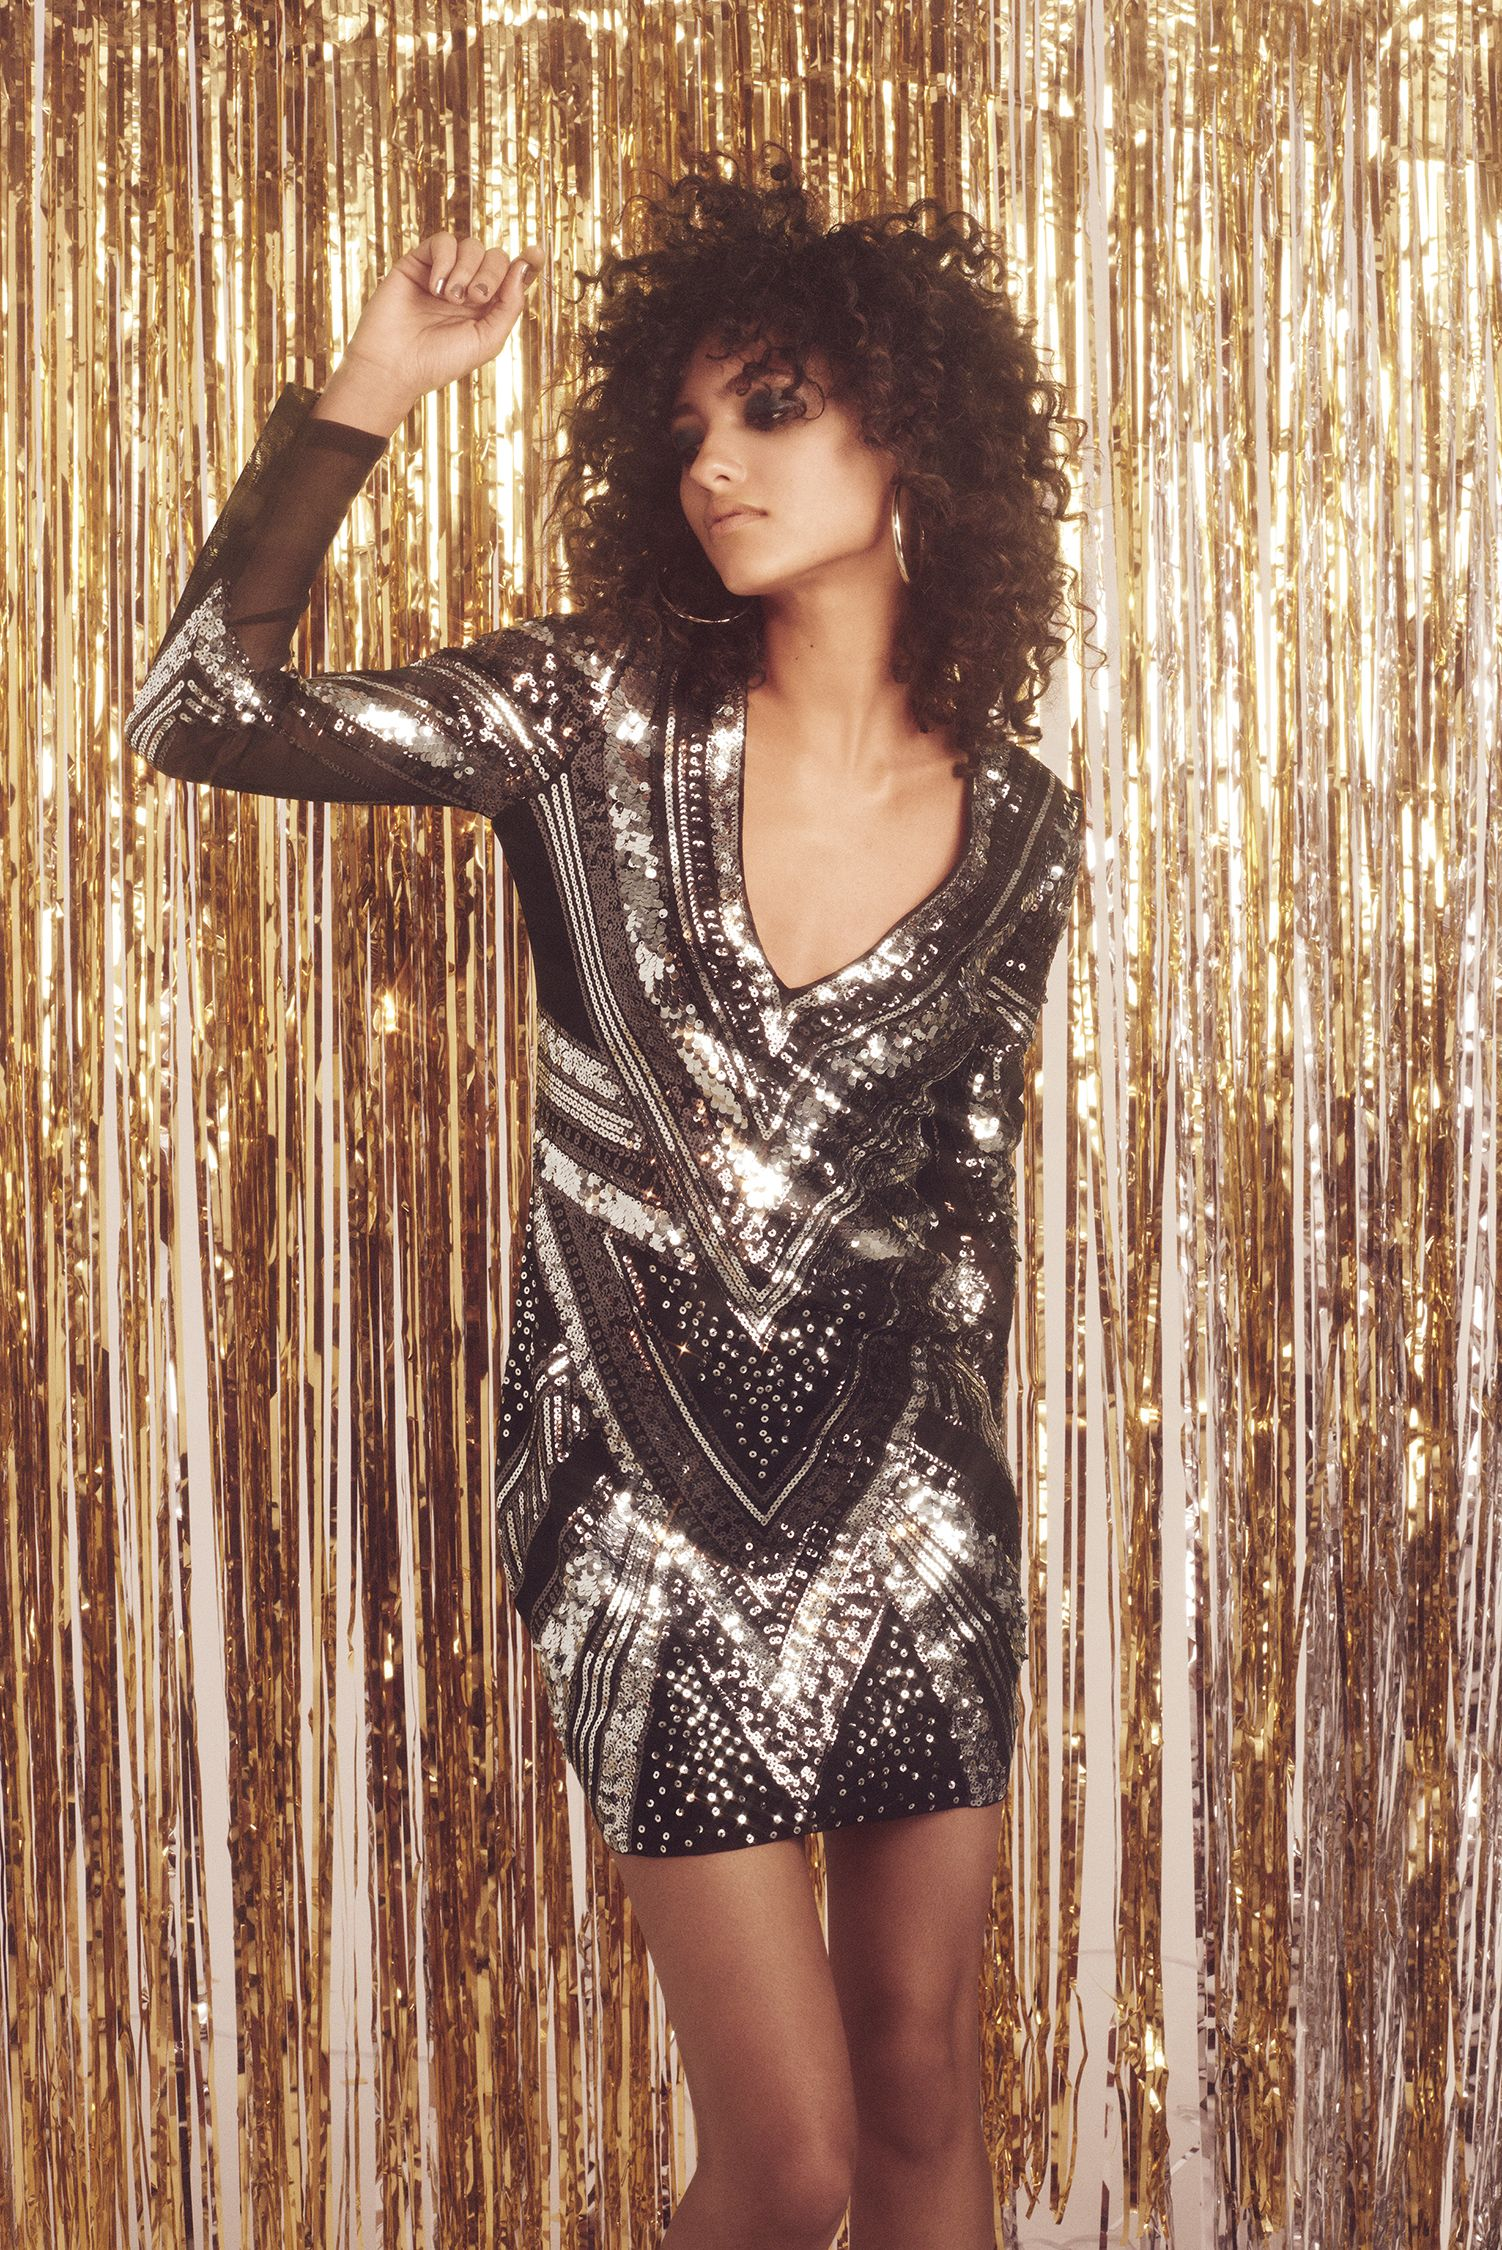 19f08d04ee2 Sparkle and shine in this Express sequin dress. Shop their Holiday  Collection now at Aventura Mall